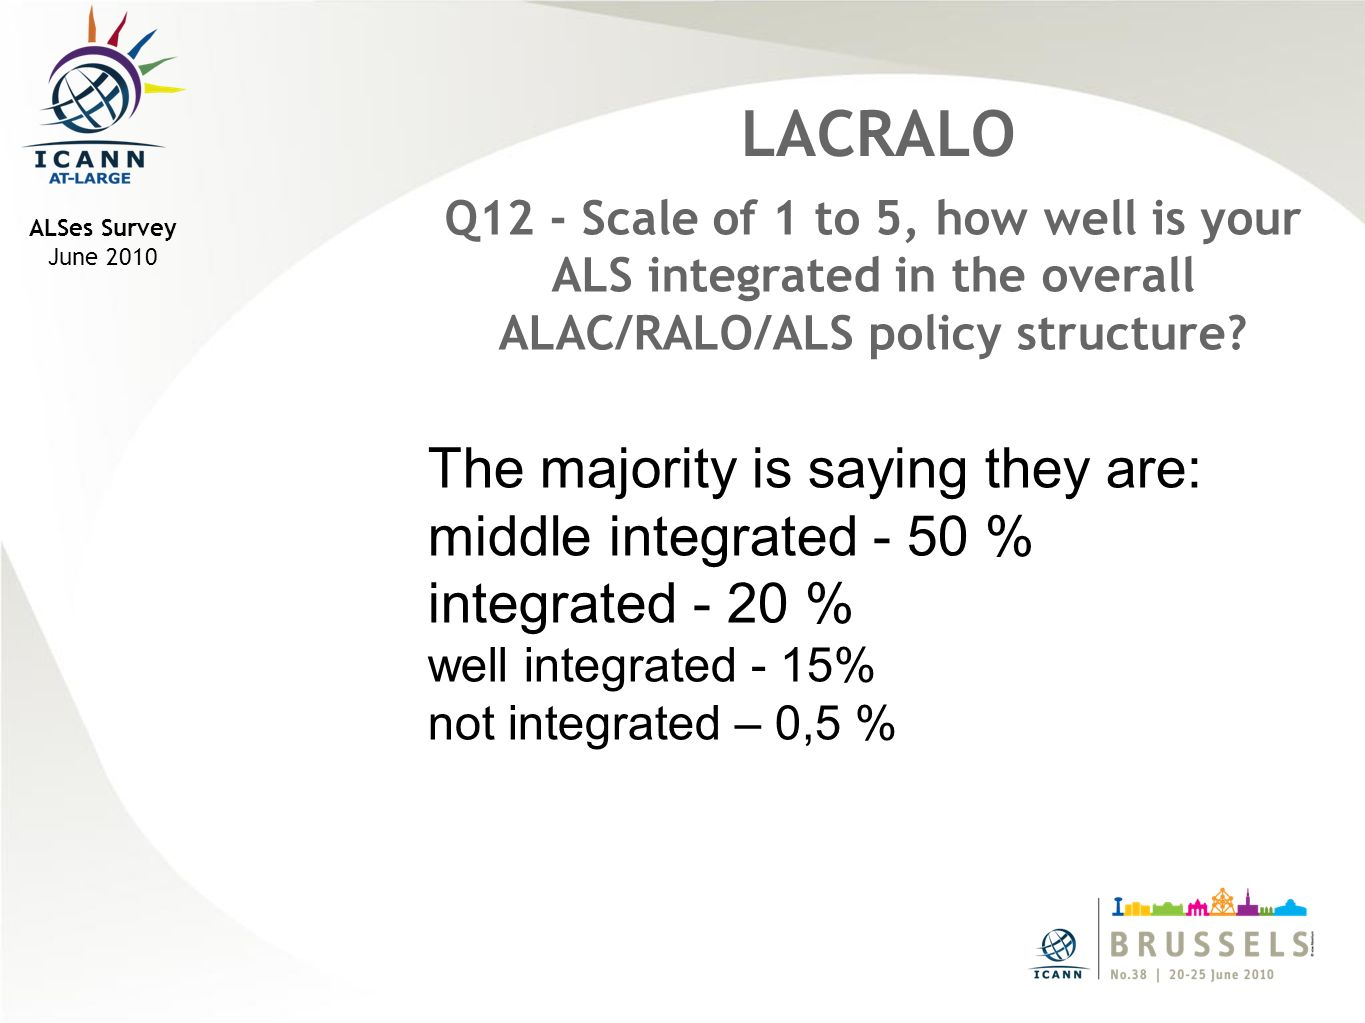 ALSes Survey June 2010 LACRALO Q12 - Scale of 1 to 5, how well is your ALS integrated in the overall ALAC/RALO/ALS policy structure.